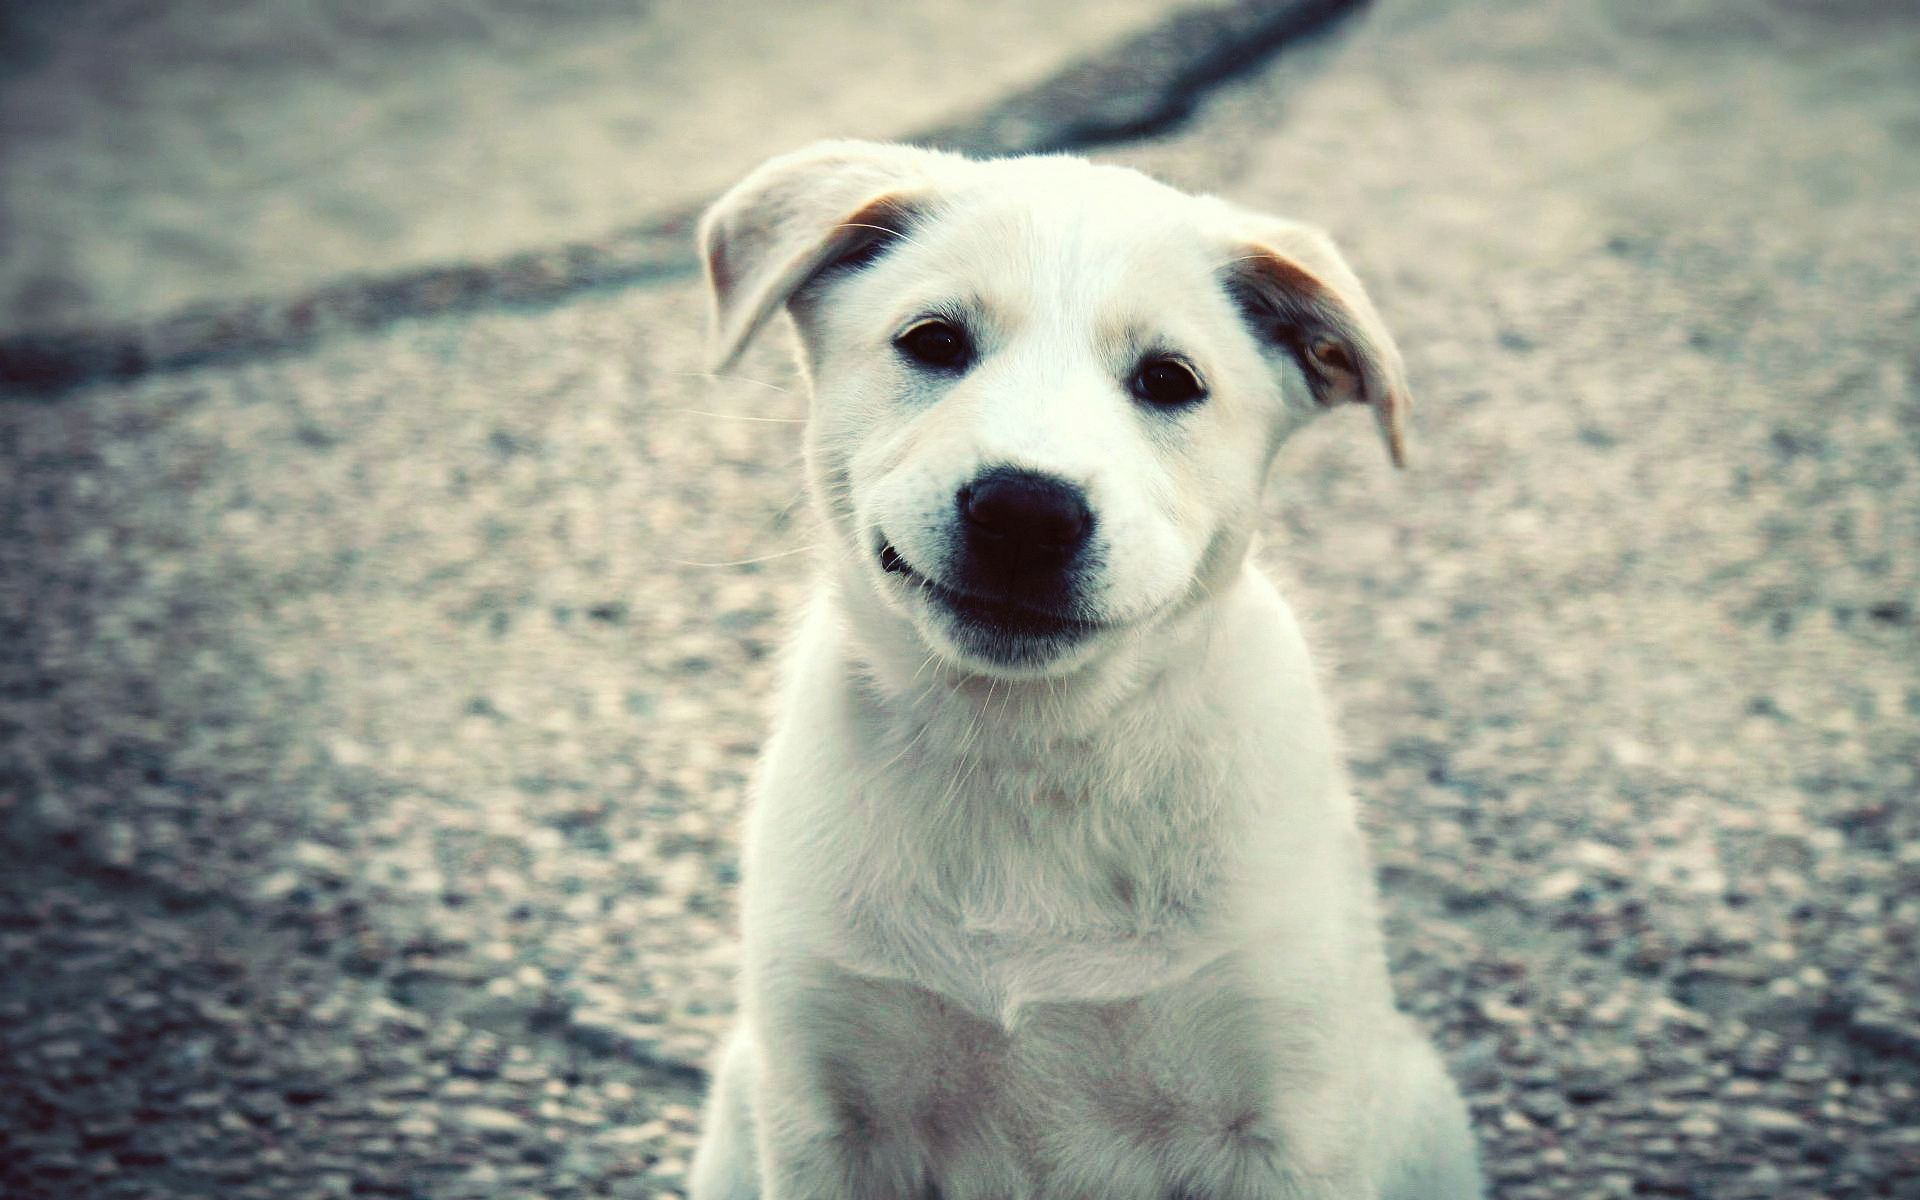 143516 download wallpaper Animals, Puppy, Labrador, Smile, Nice, Sweetheart screensavers and pictures for free